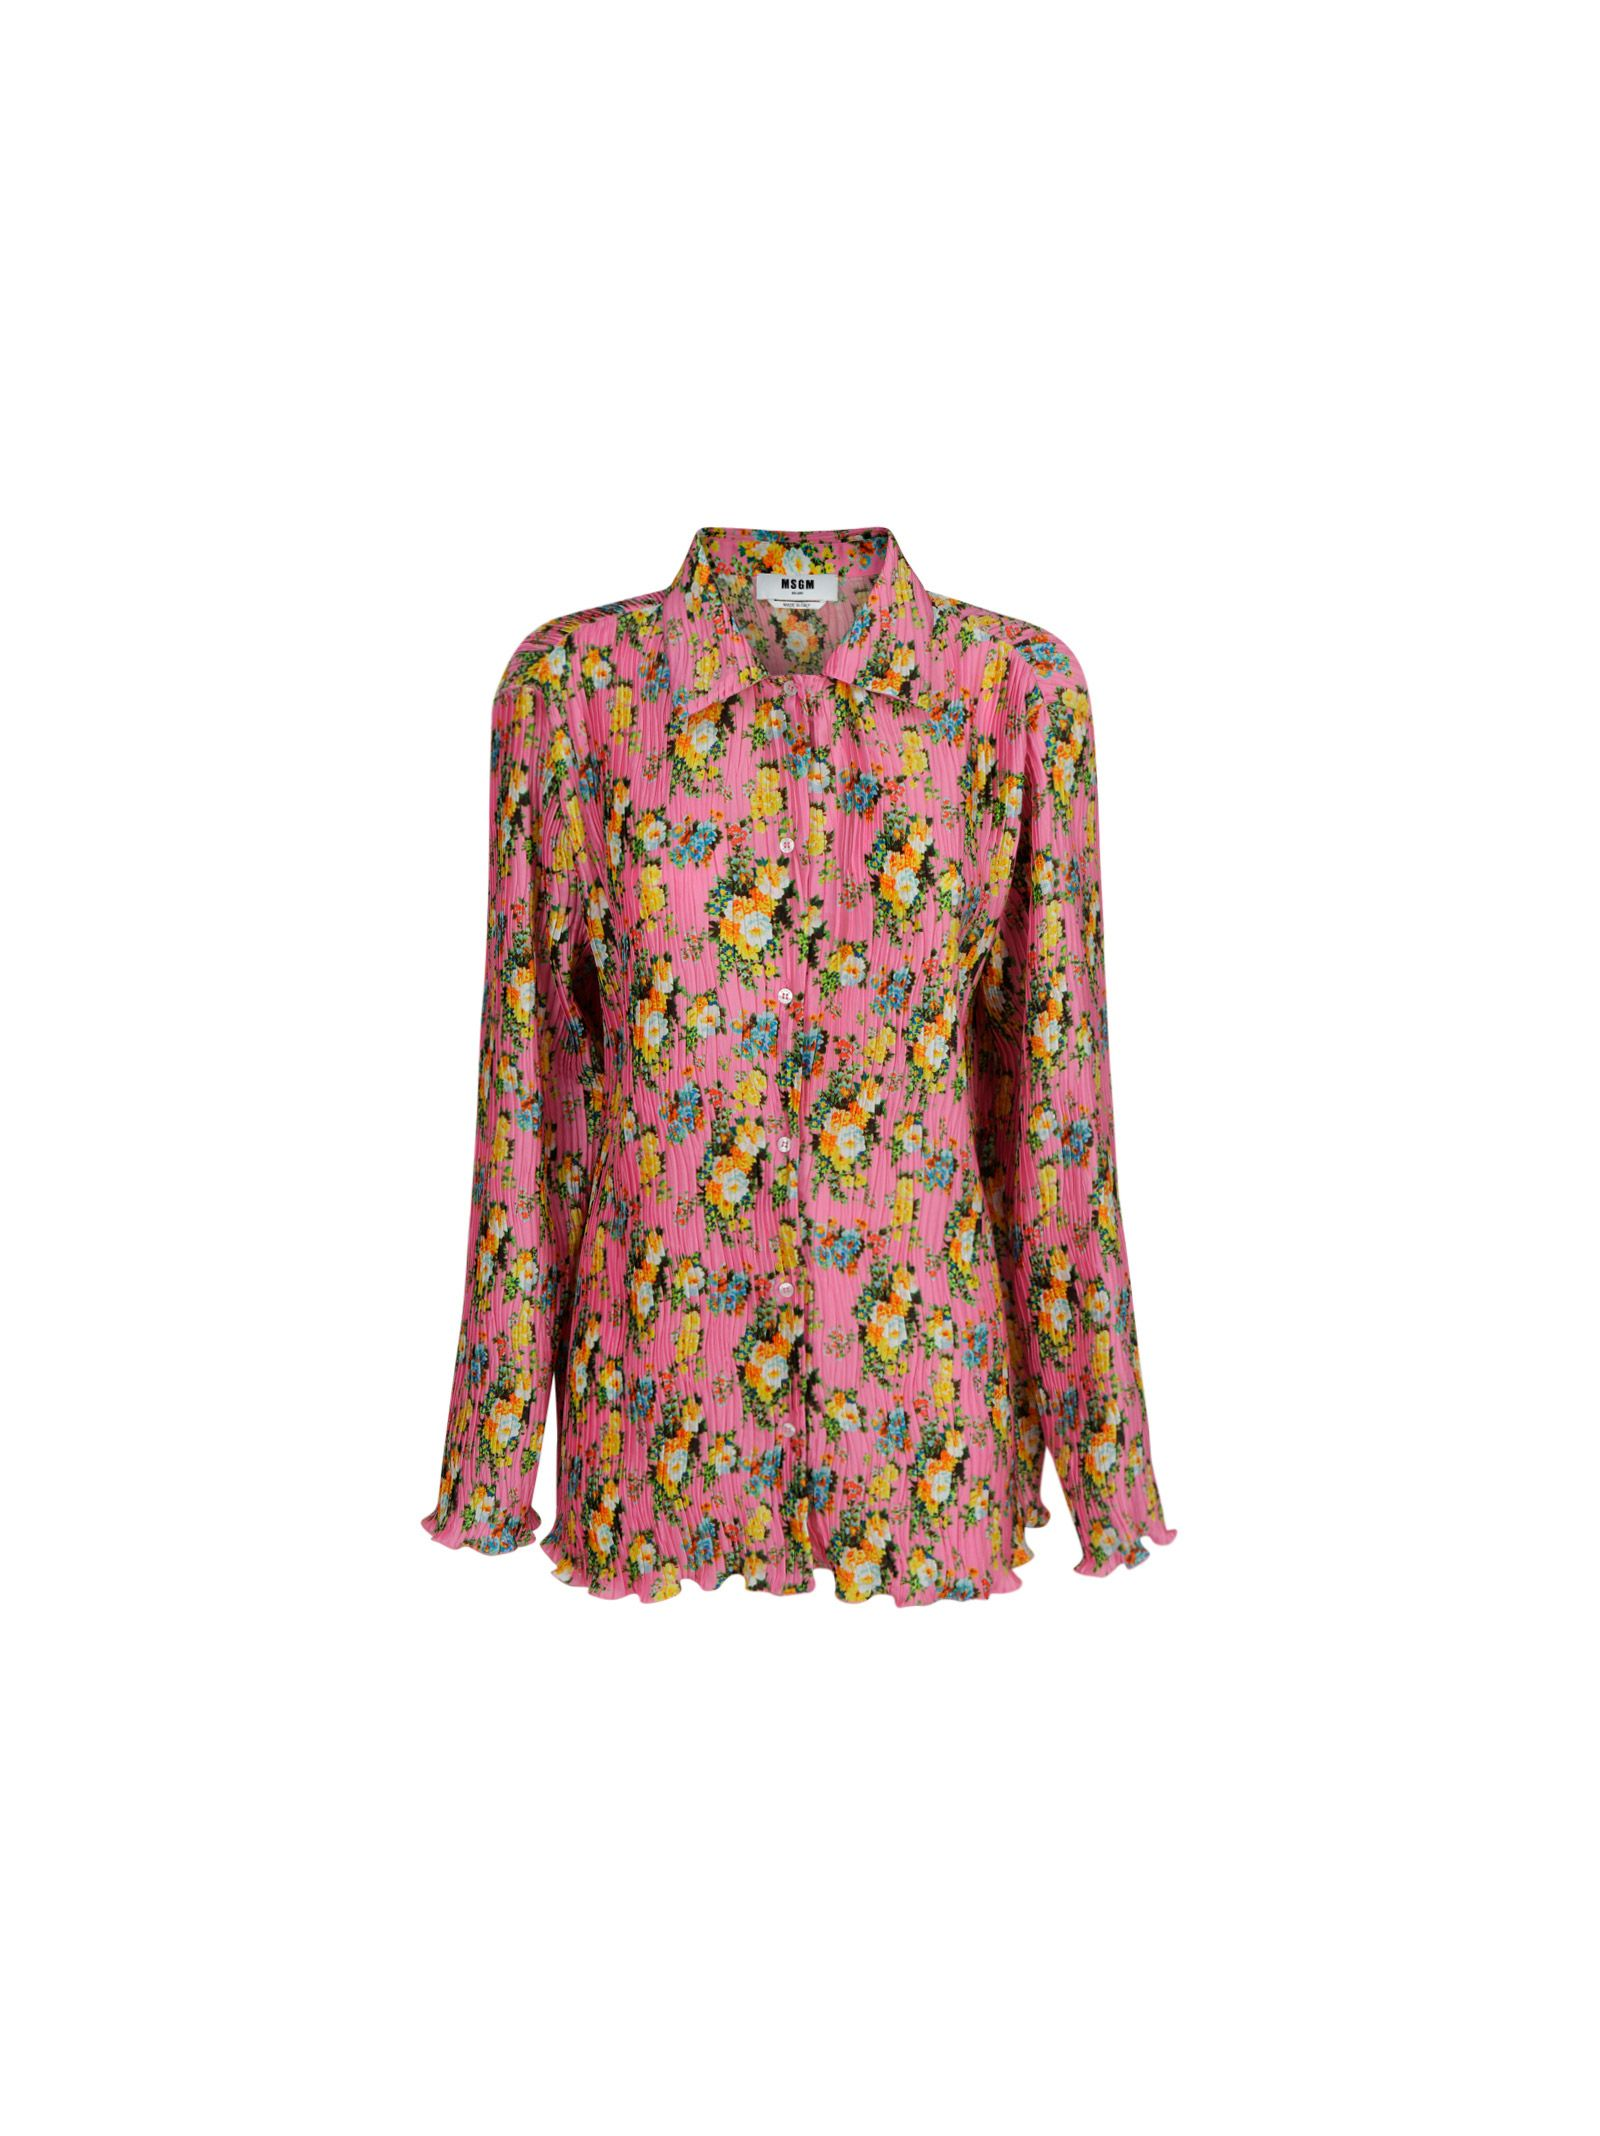 Msgm Downs MSGM WOMEN'S PINK OTHER MATERIALS SHIRT